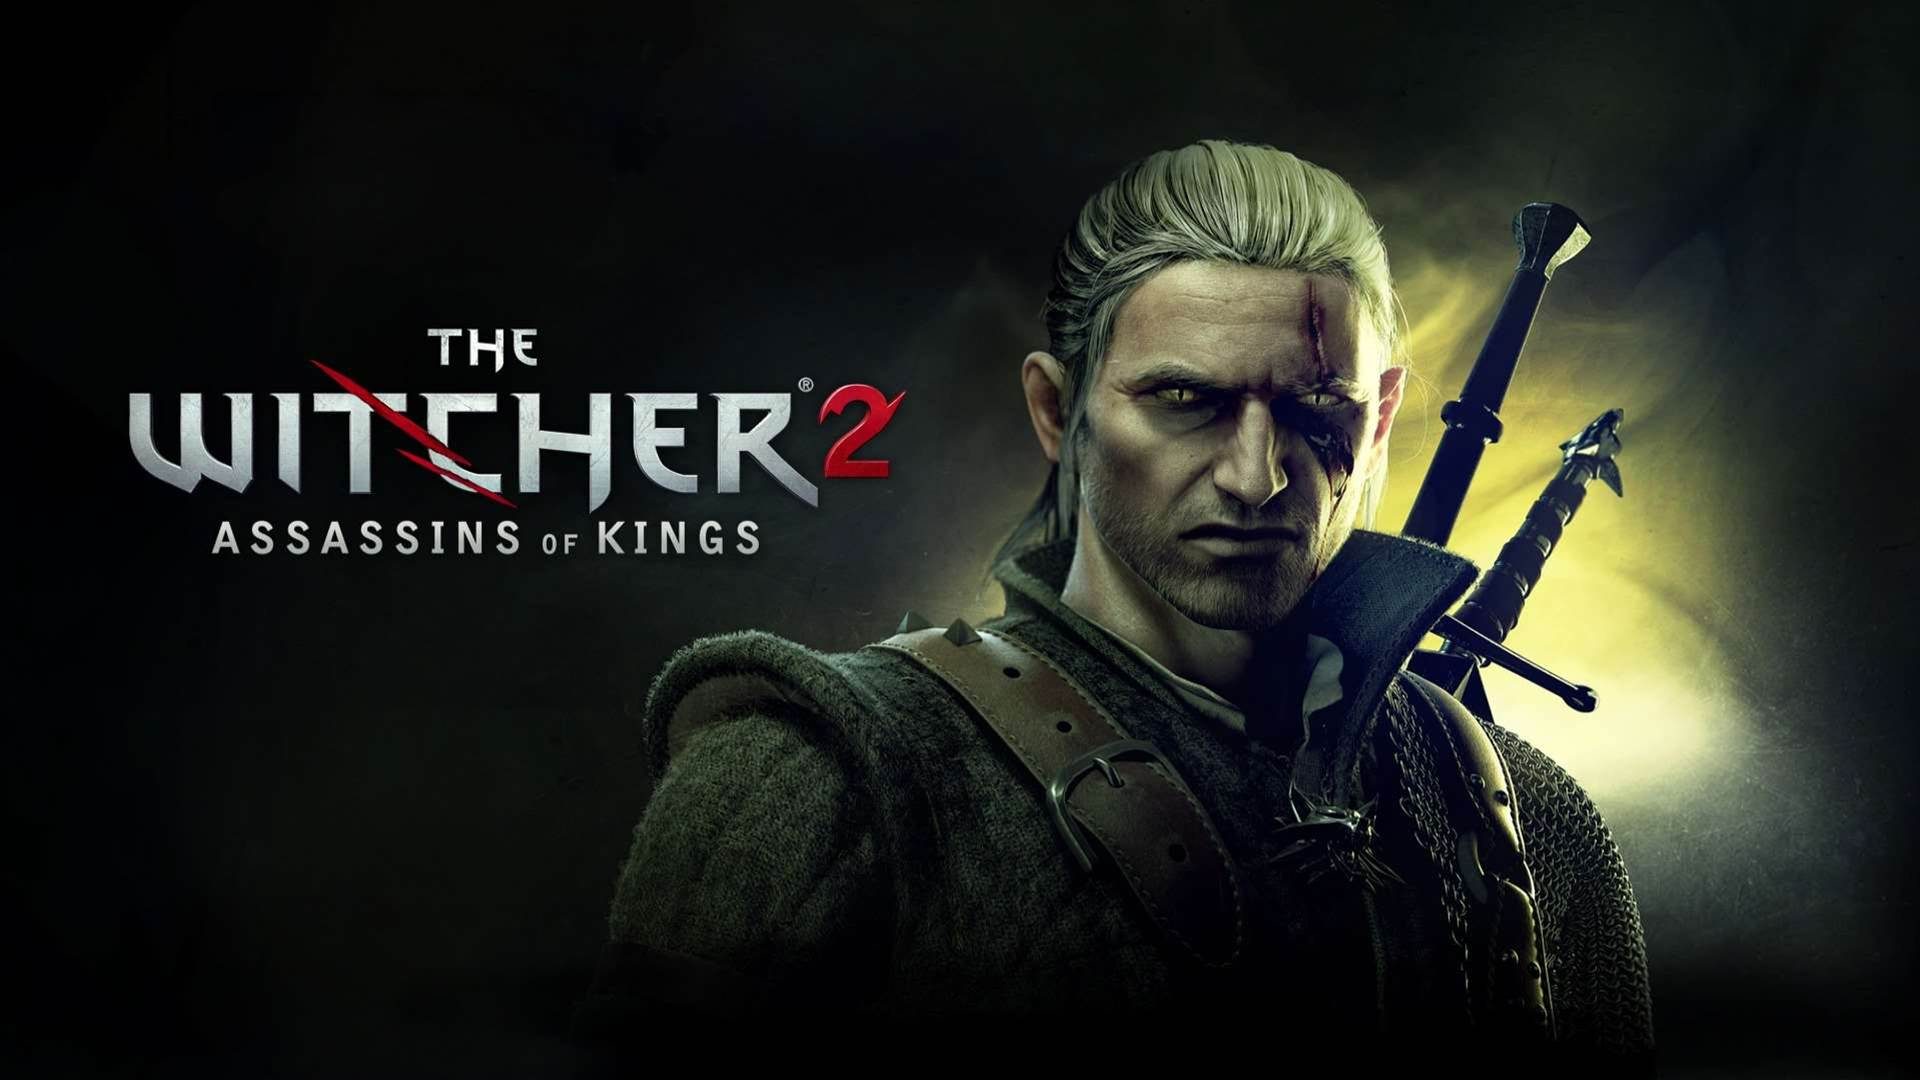 Free Witcher 2 bonus content coming to PC users on April 17